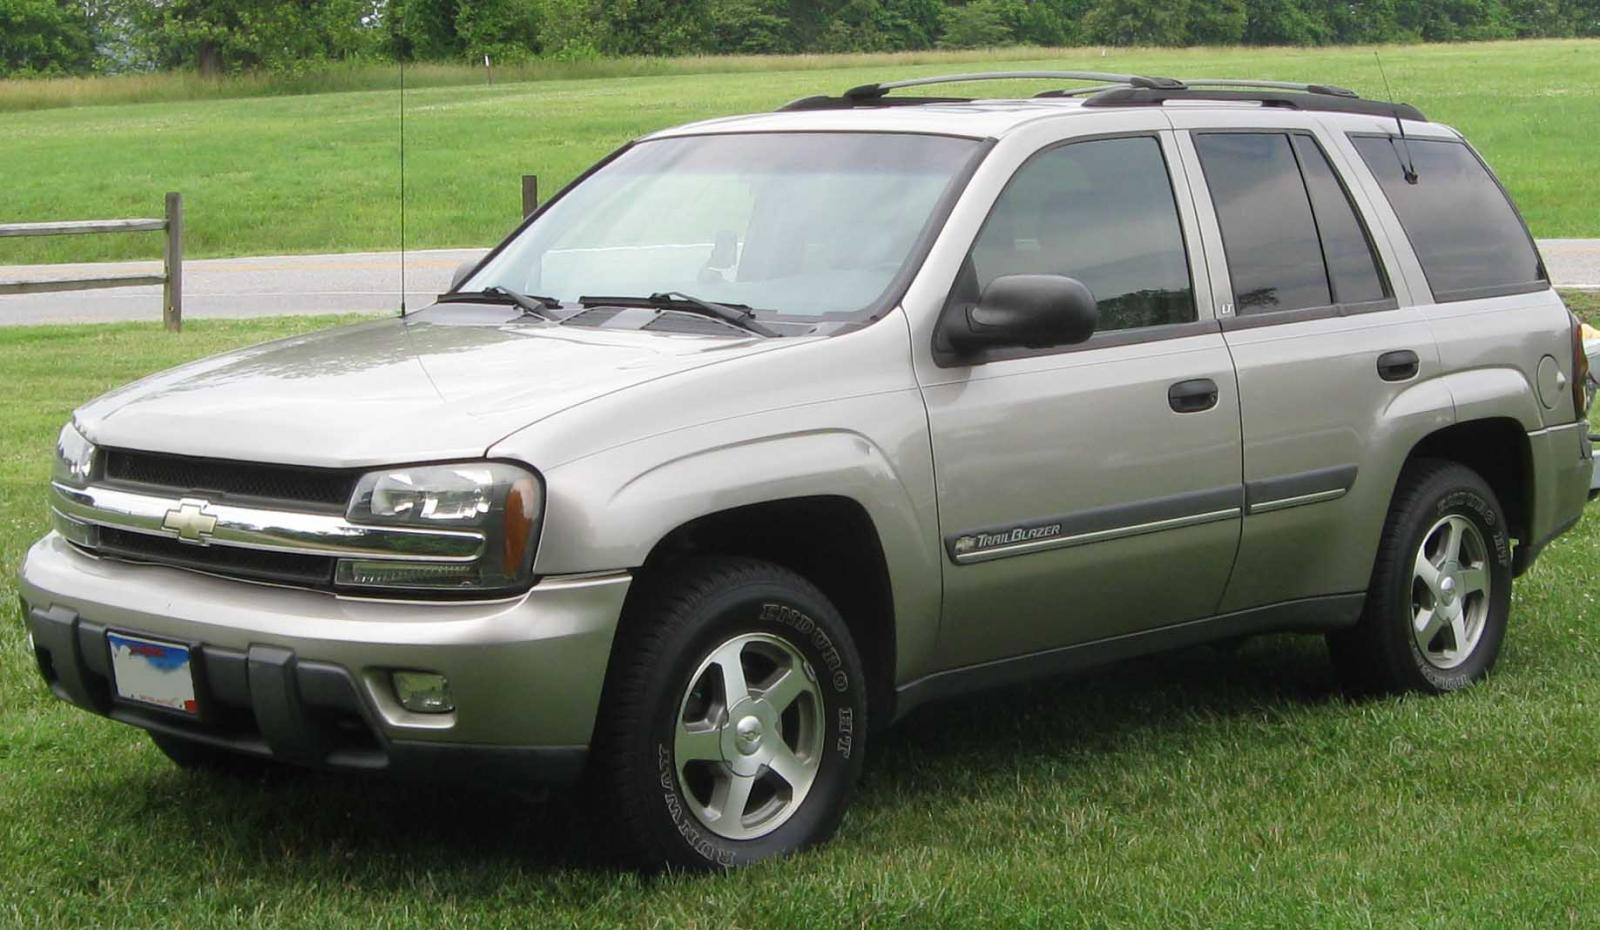 2004 chevrolet trailblazer information and photos zombiedrive 2006 chevy  trailblazer rear fuse box 2004 chevrolet trailblazer